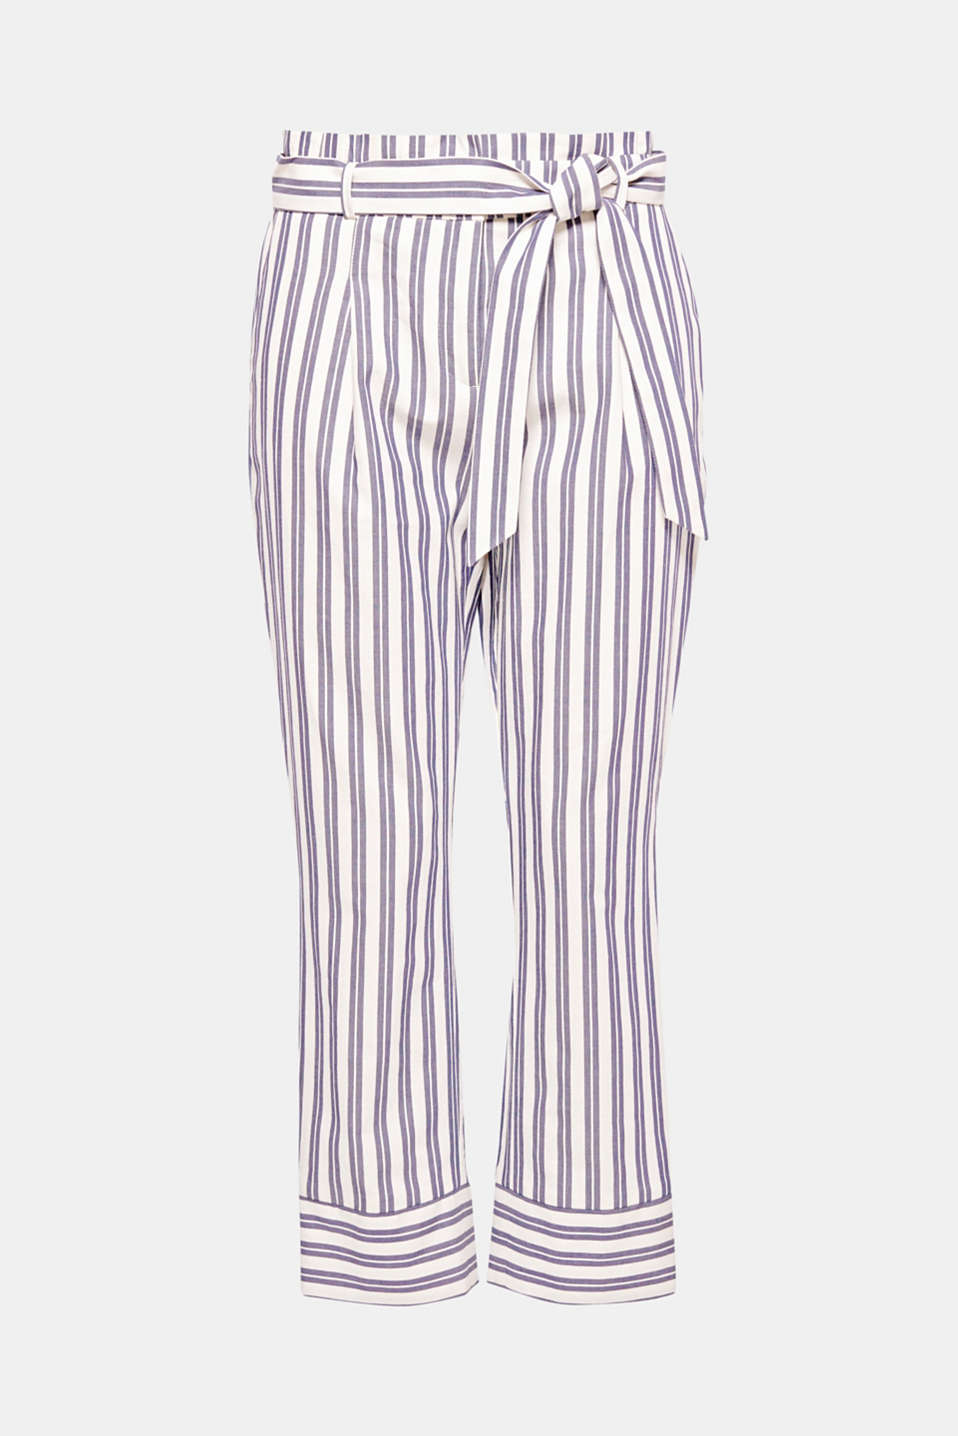 These trendy trousers with a fashionable paperbag waistband can be both casual or chic! Fresh stripes and pure cotton material accentuate the summery style.